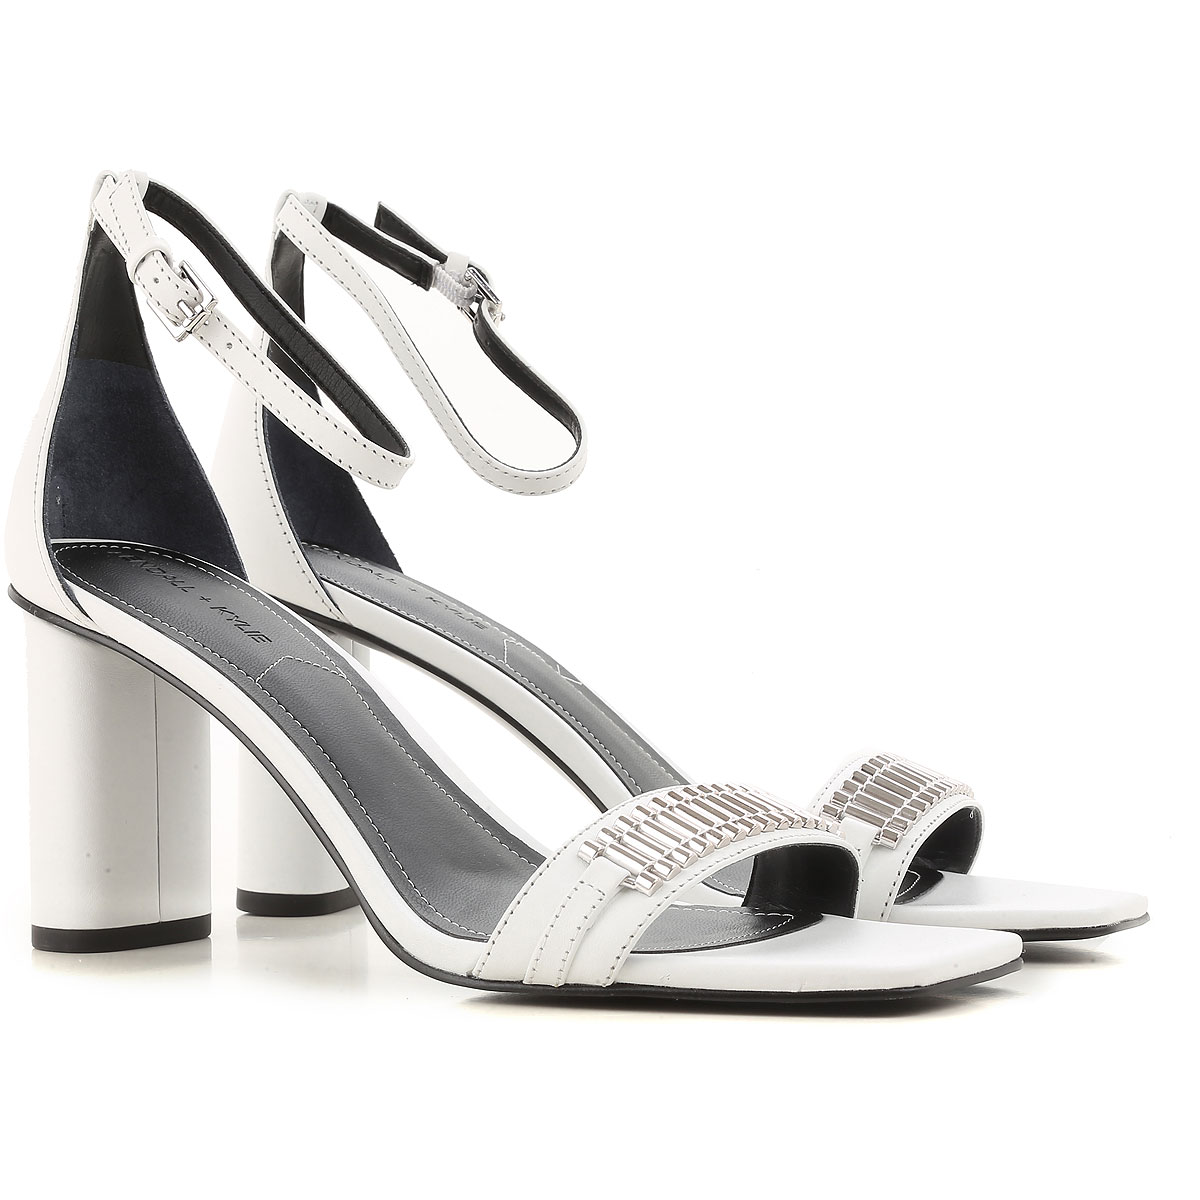 Kendall Kylie Sandals for Women On Sale in Outlet, White, Leather, 2019, 7 8.5